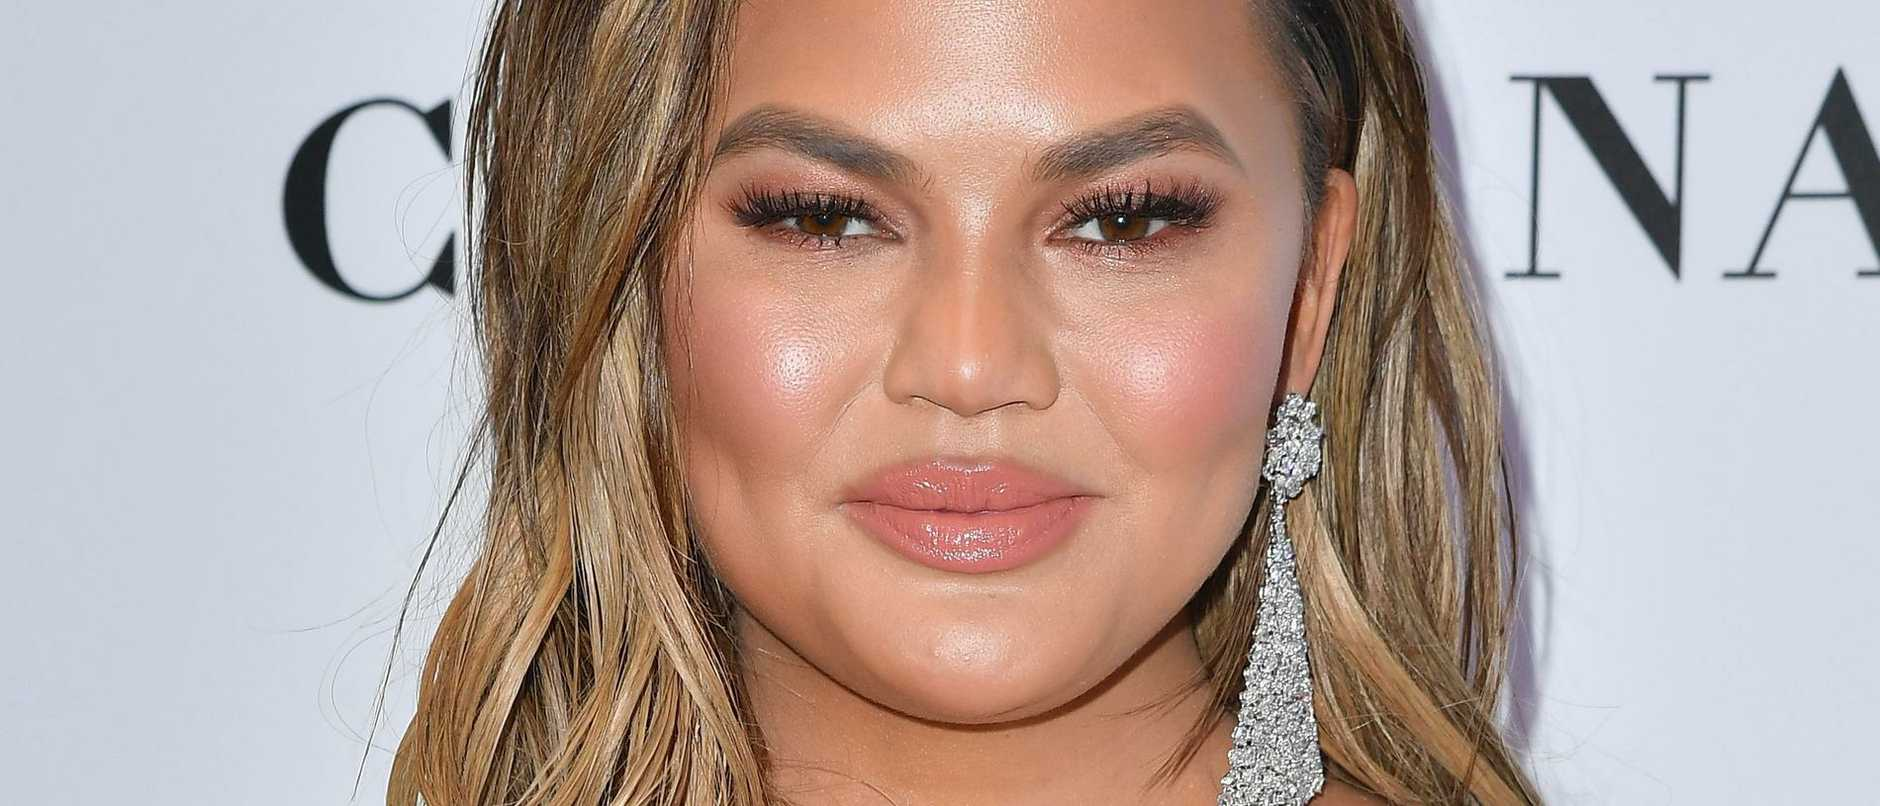 Chrissy Teigen has lifted the lid on the secret perks to being a celebrity – including one that'll make every traveller green with envy.